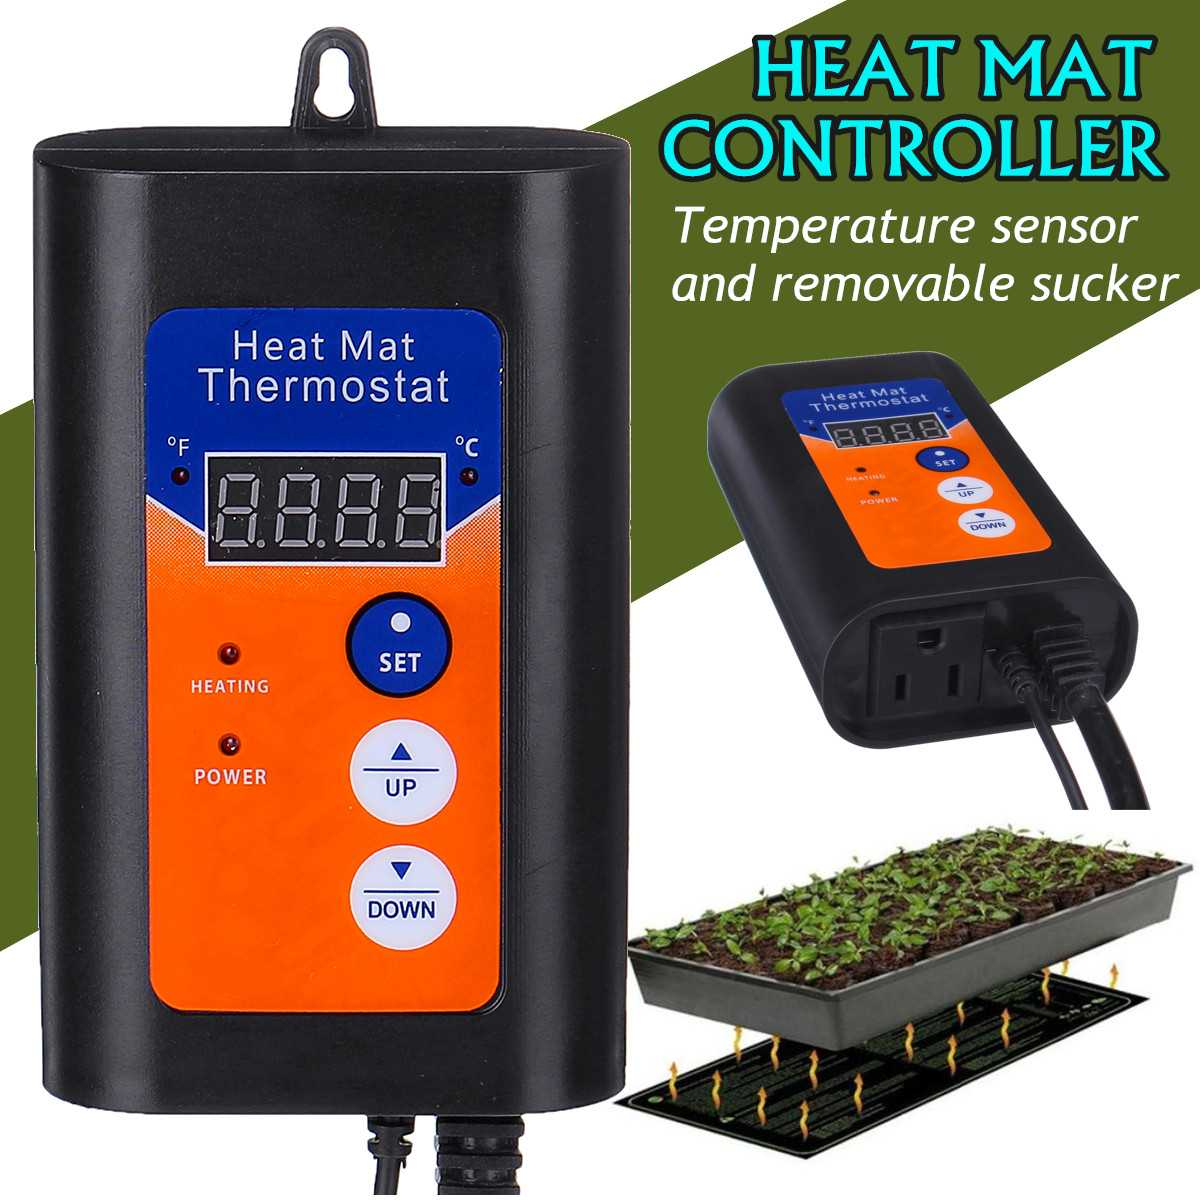 Digital Heat Mat Thermostat 120V 1000W Temperature Controller For Hydroponic Plants Seed Germination Reptiles Pets Supplies